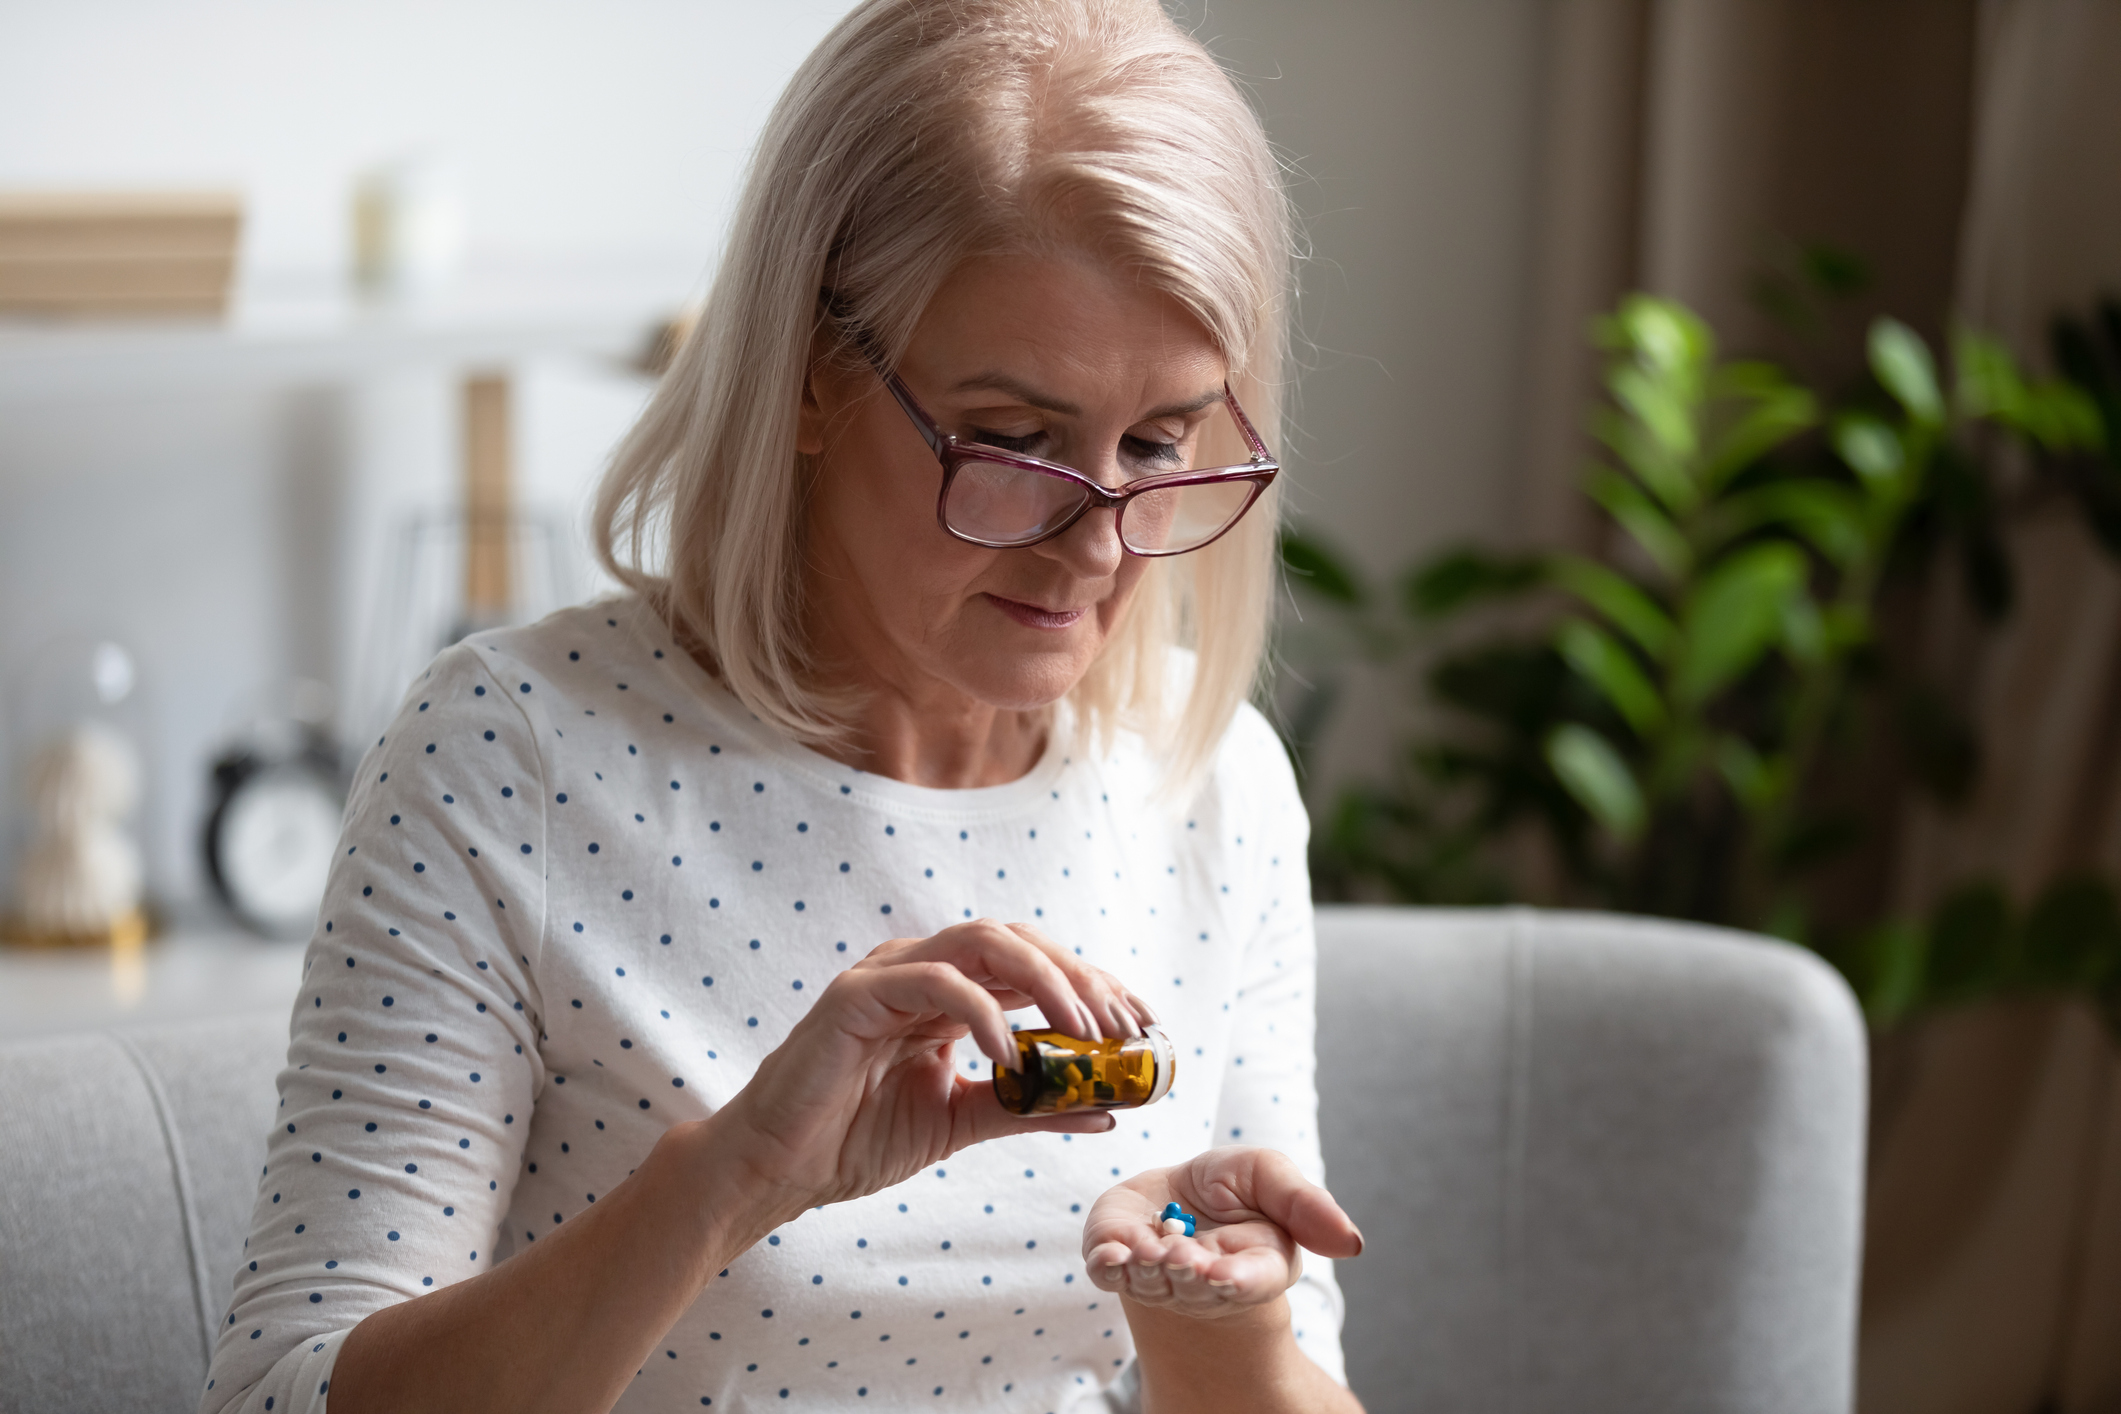 Are you taking one of these medications that increase fall risk?